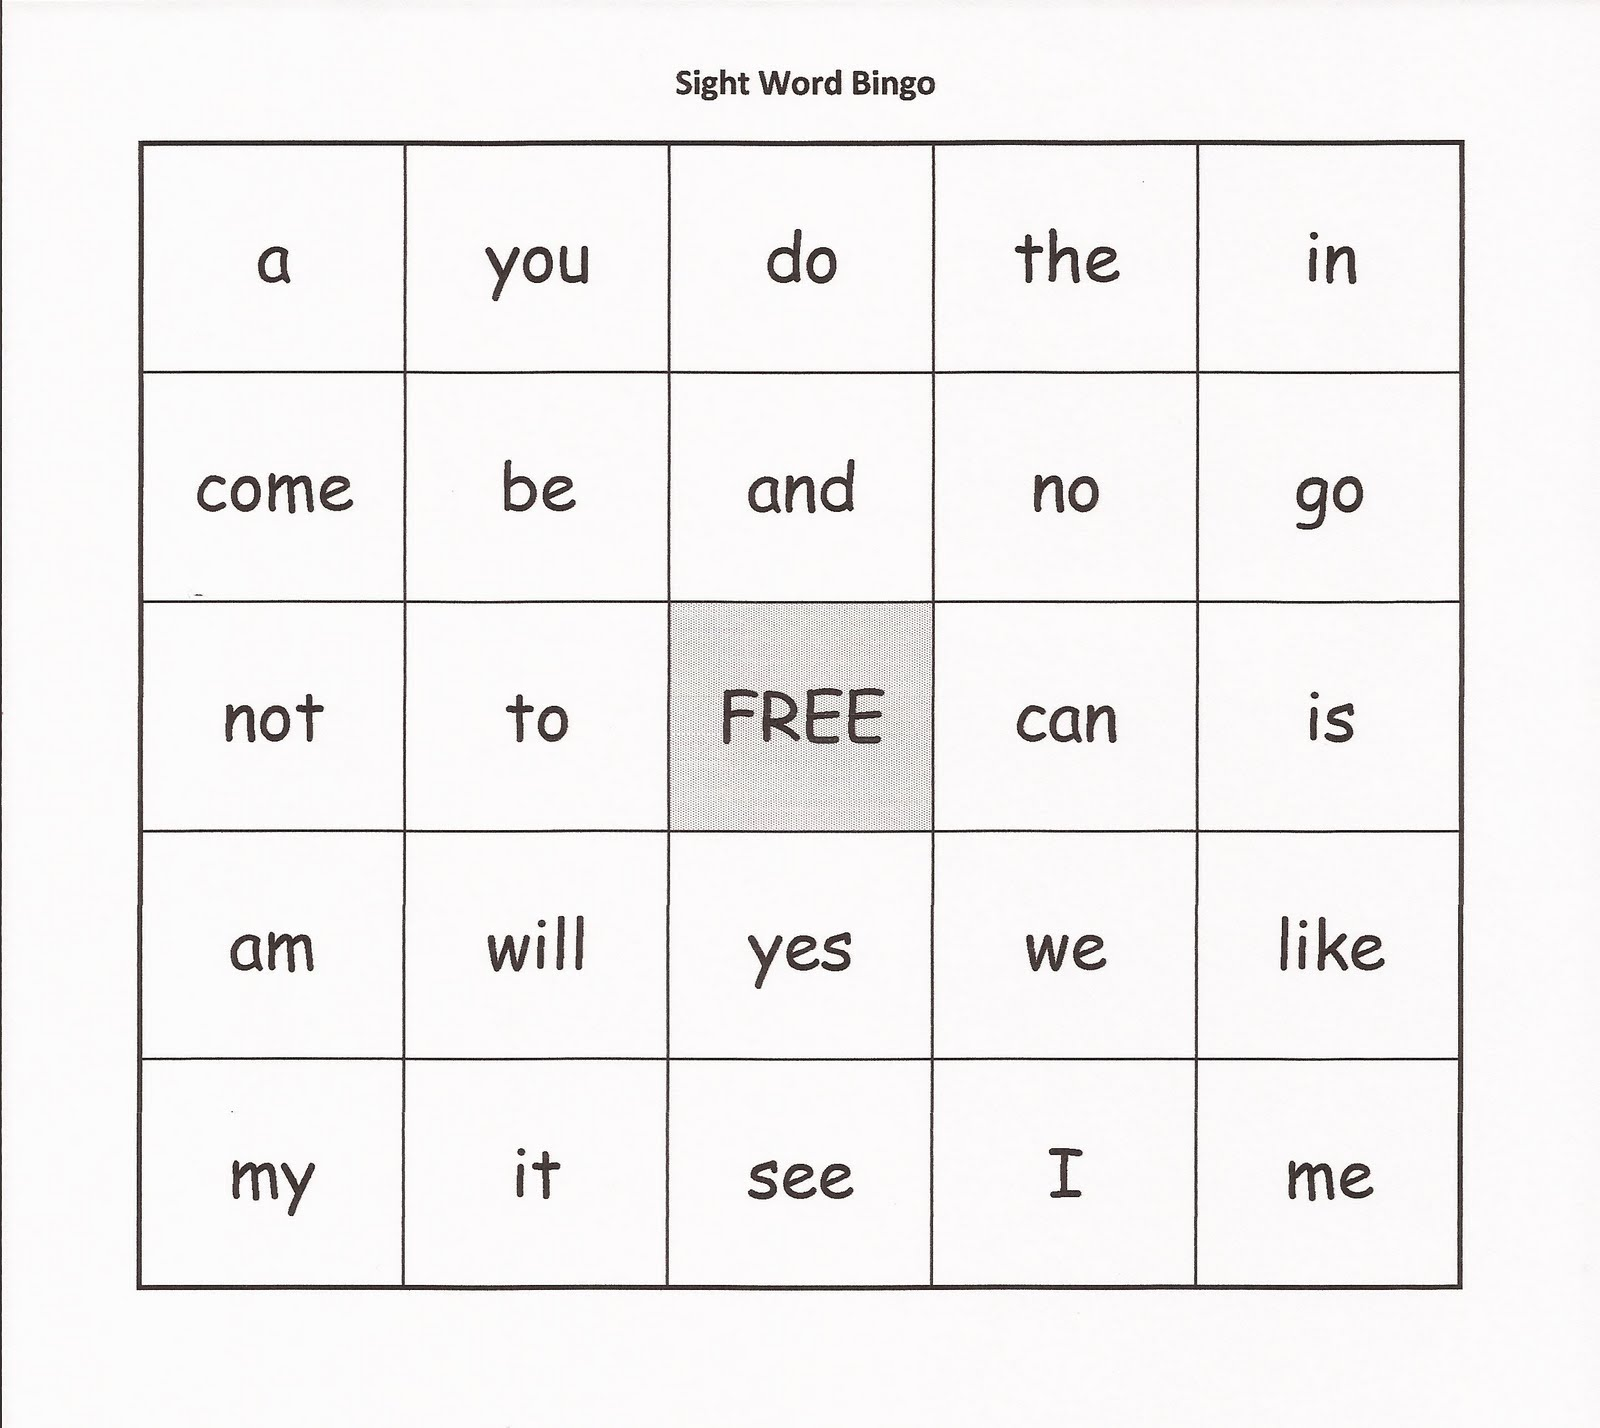 Word Sight list  book sight word Bingo